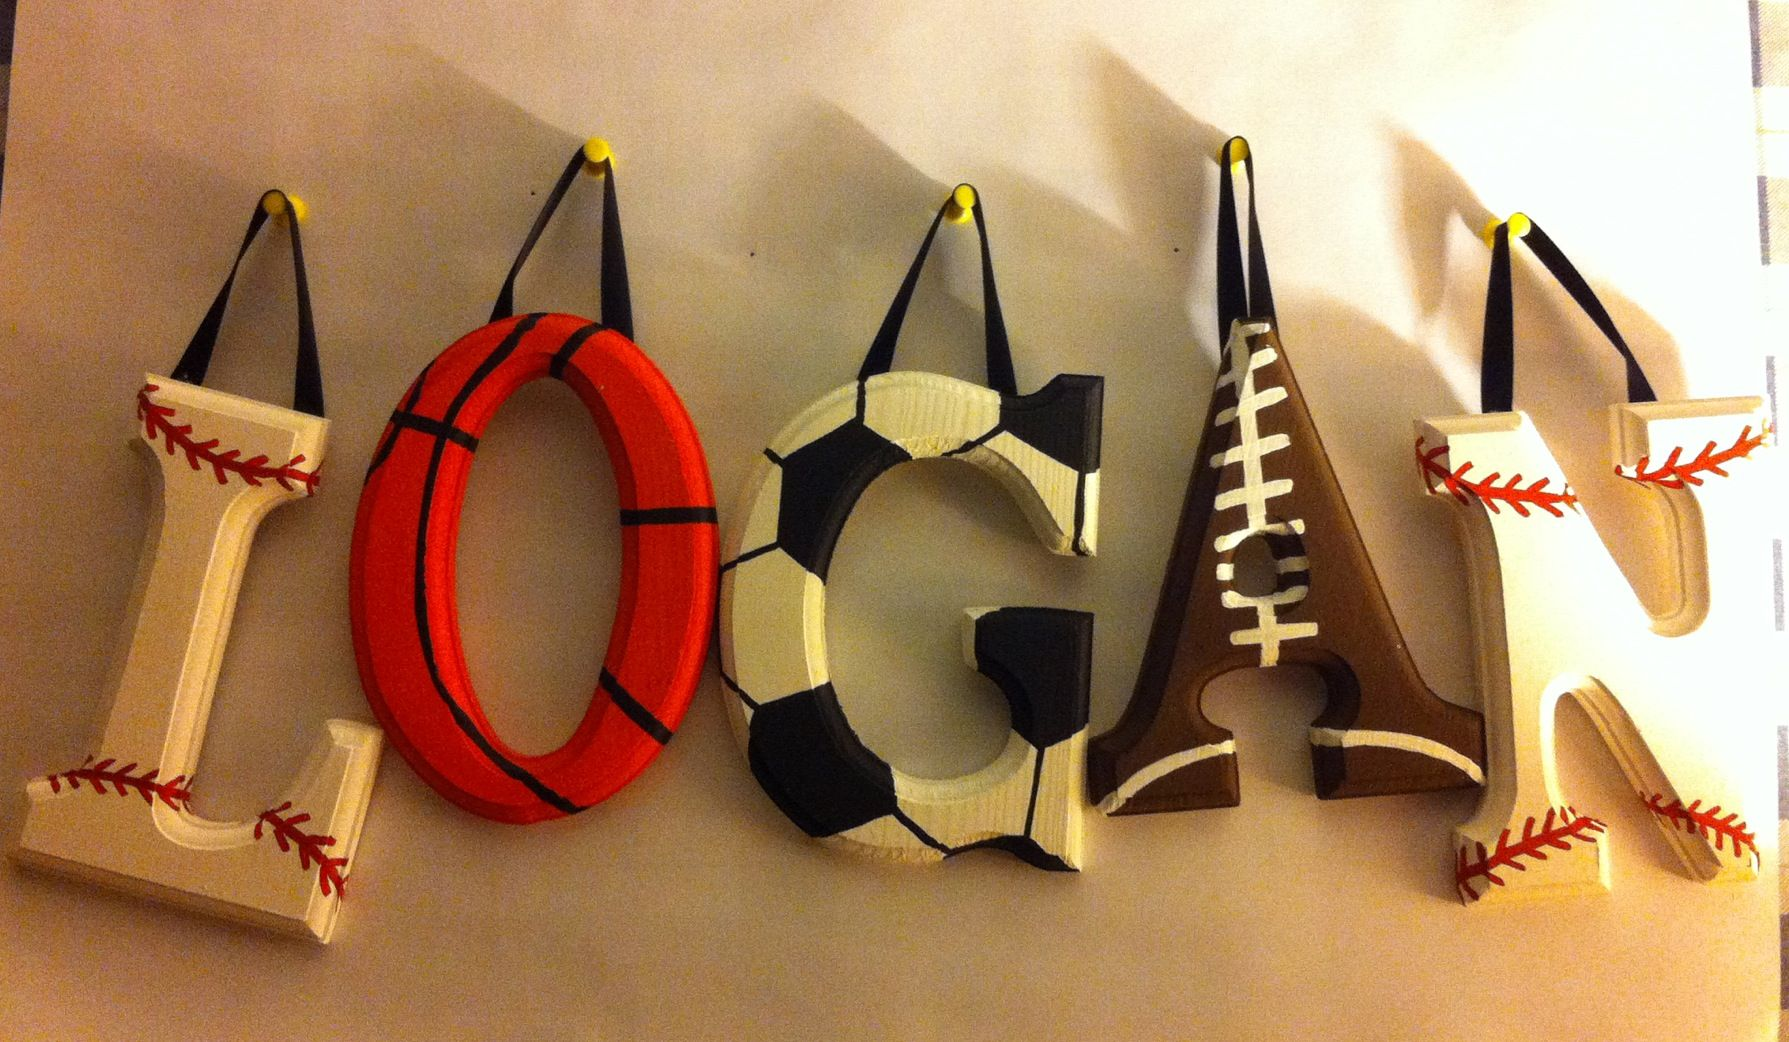 Sports nursery kids wall letters personalized homemade for Homemade wall letters